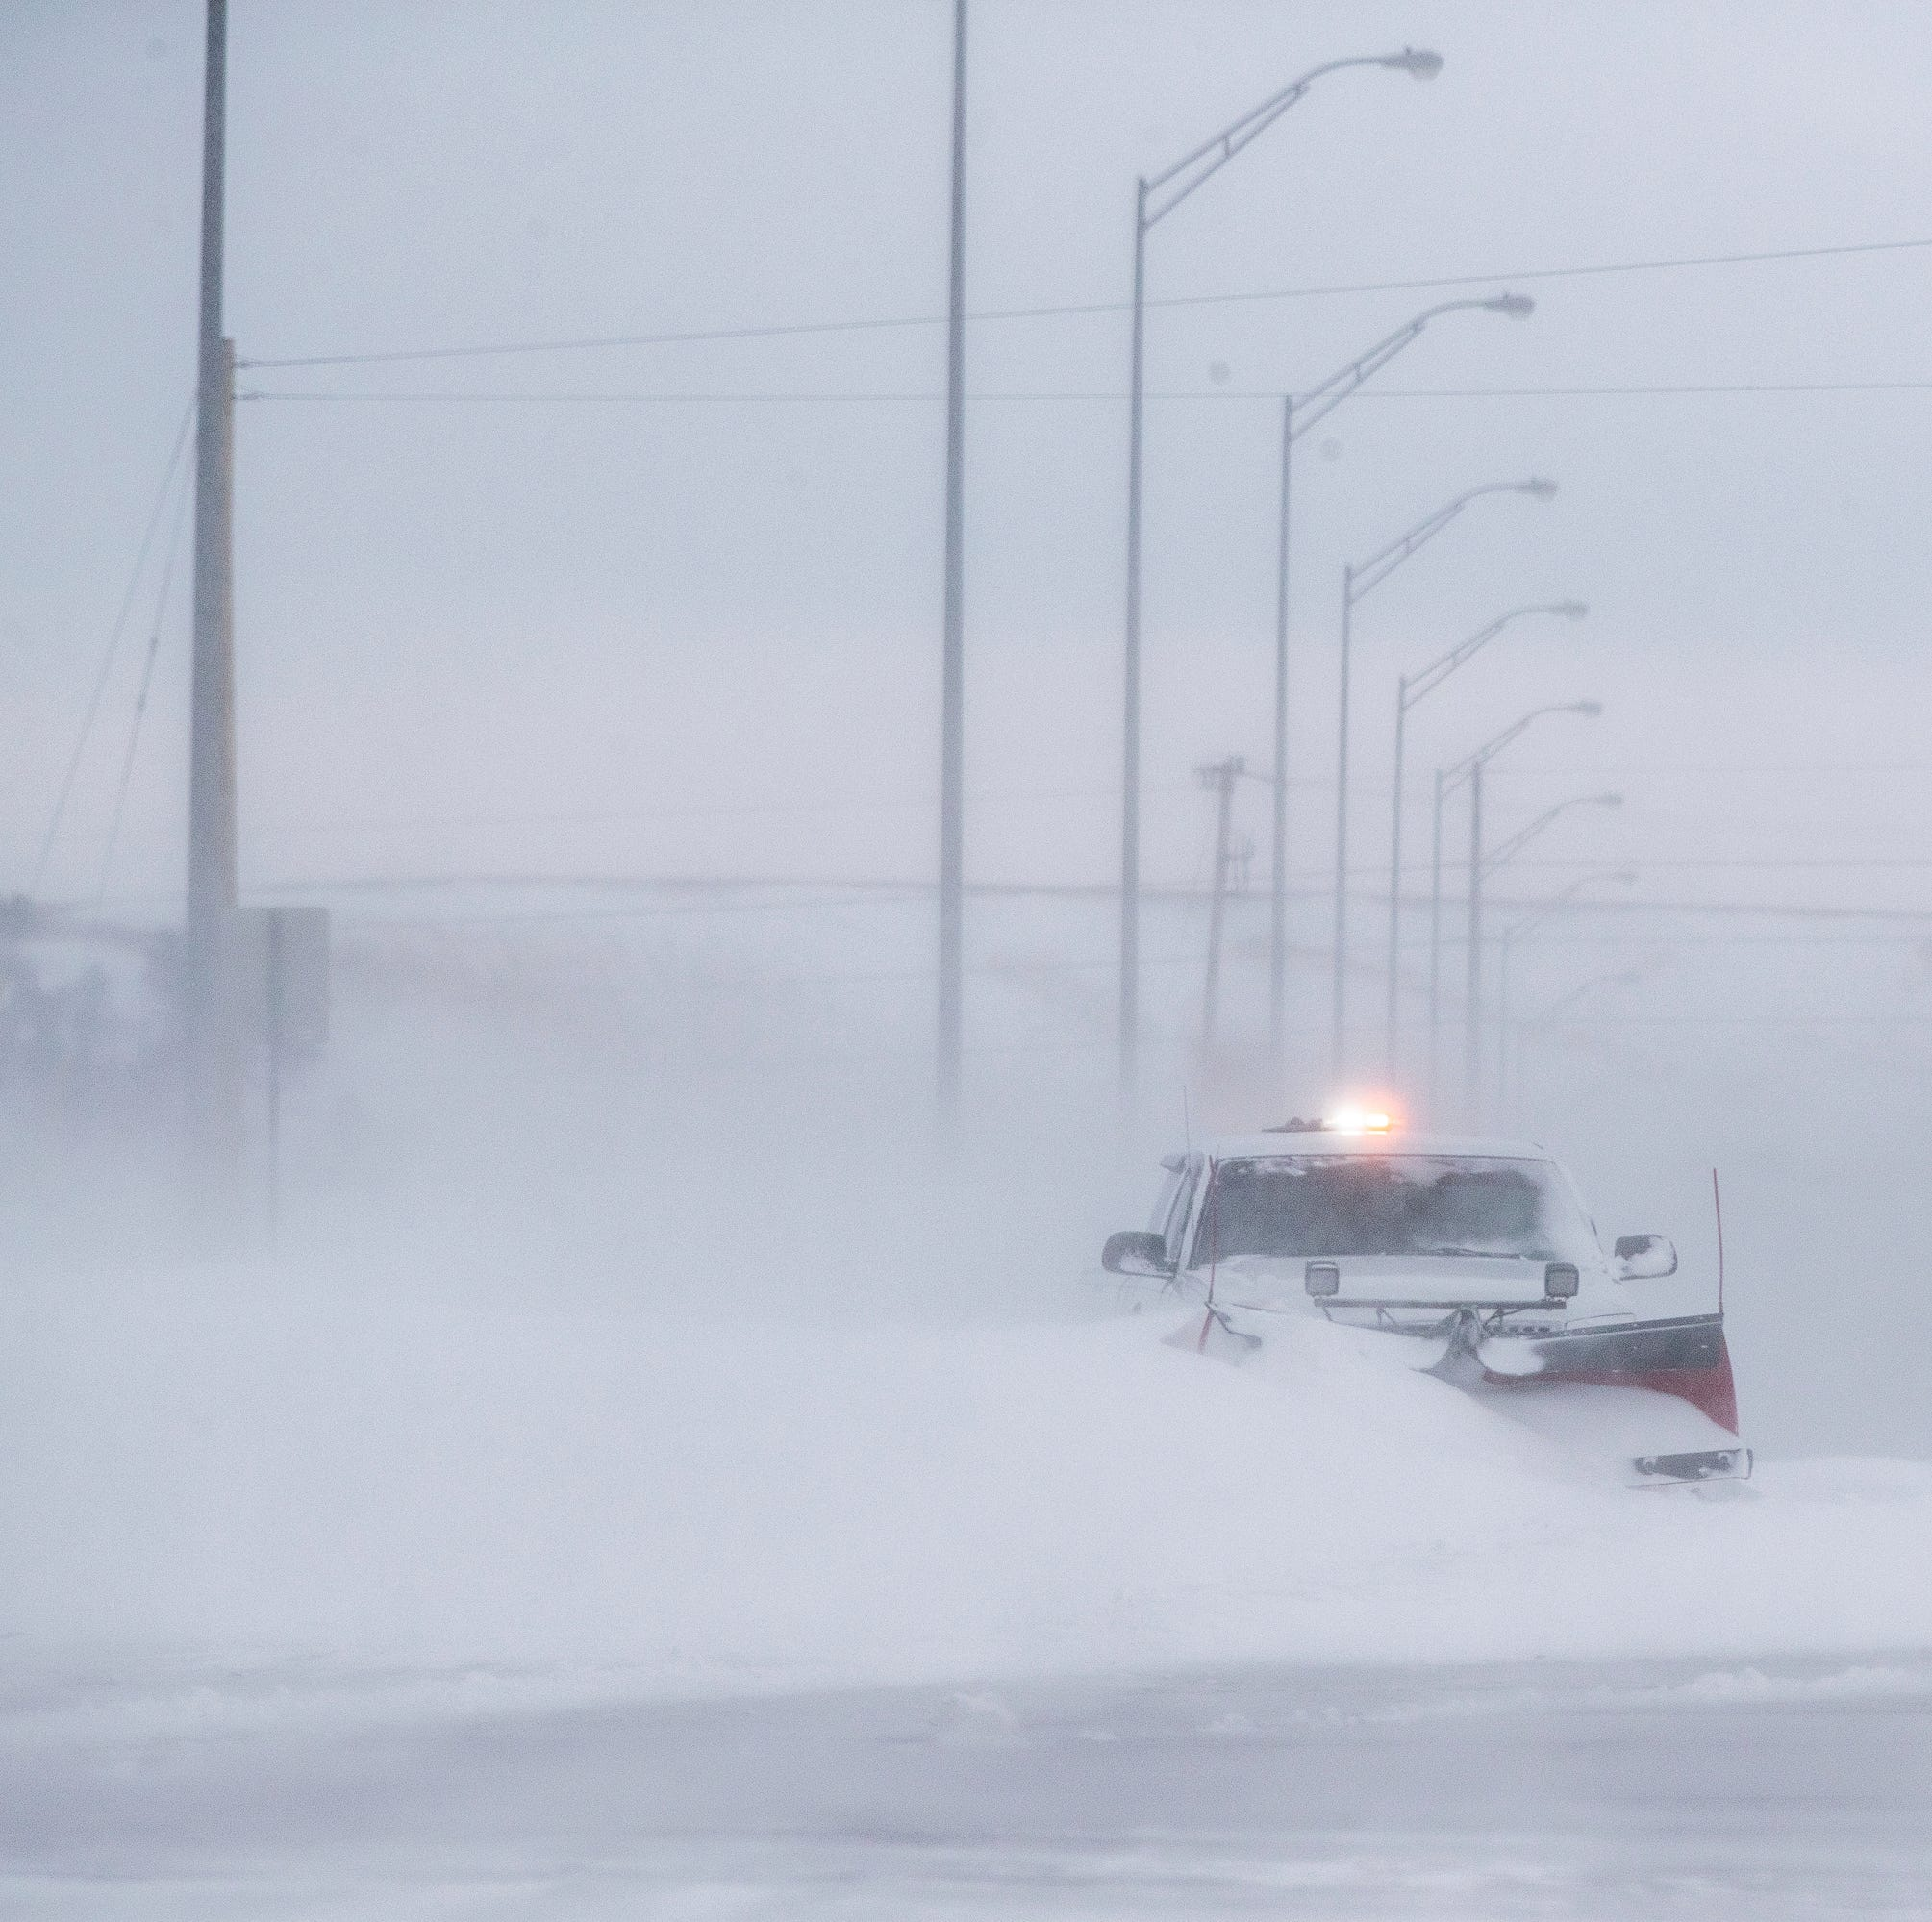 A truck with a snow plow is stuck in a snow drift on Haines Avenue in Rapid City, S.D., Thursday, March 14, 2019.  All state offices are now closed in South Dakota as blizzard conditions barrel into the Midwest.